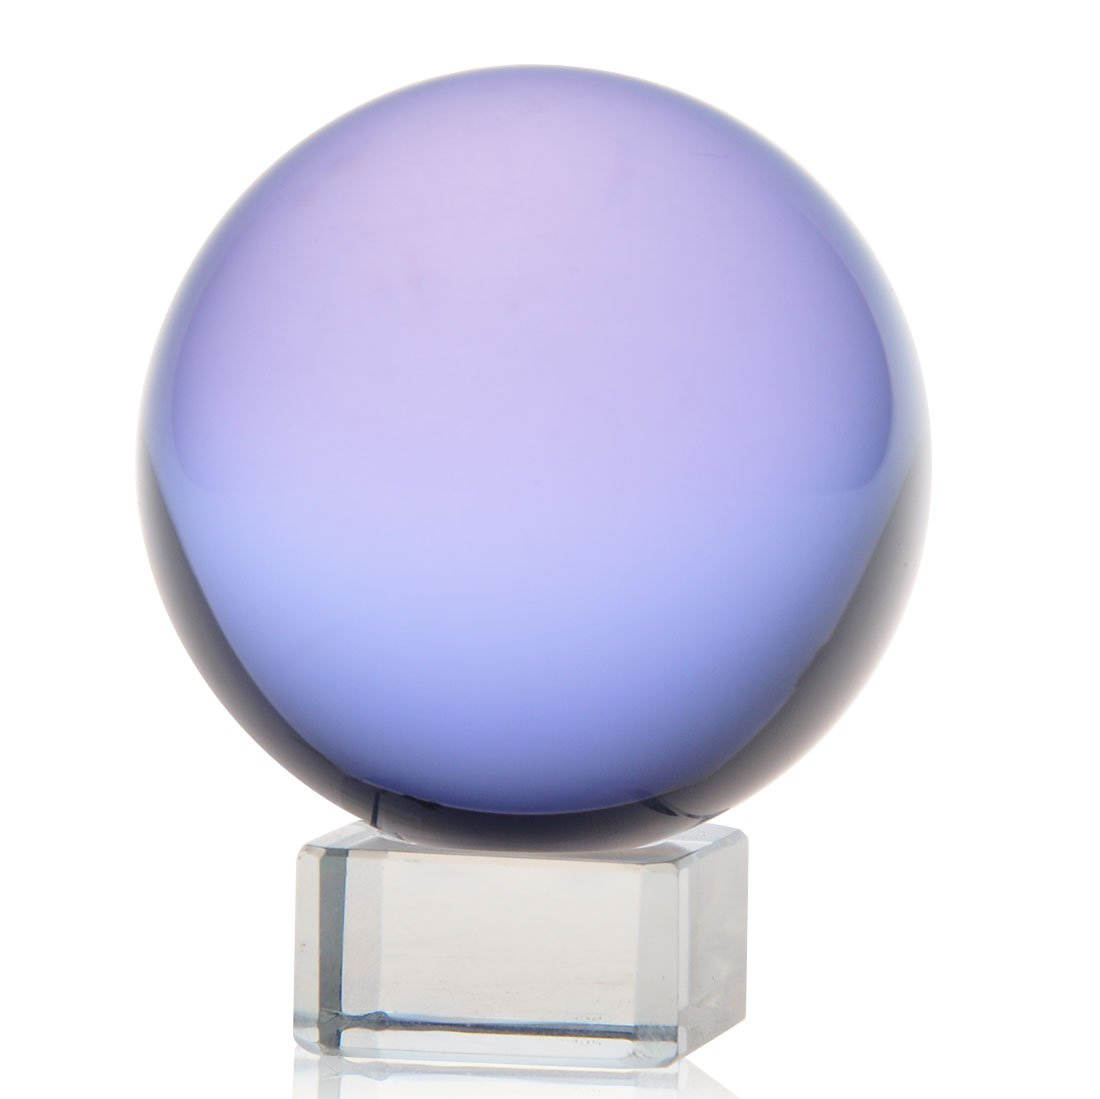 H&D 50mm Magic Crystal Meditation Ball Globe for Decoration Free Stand (crystal purple)